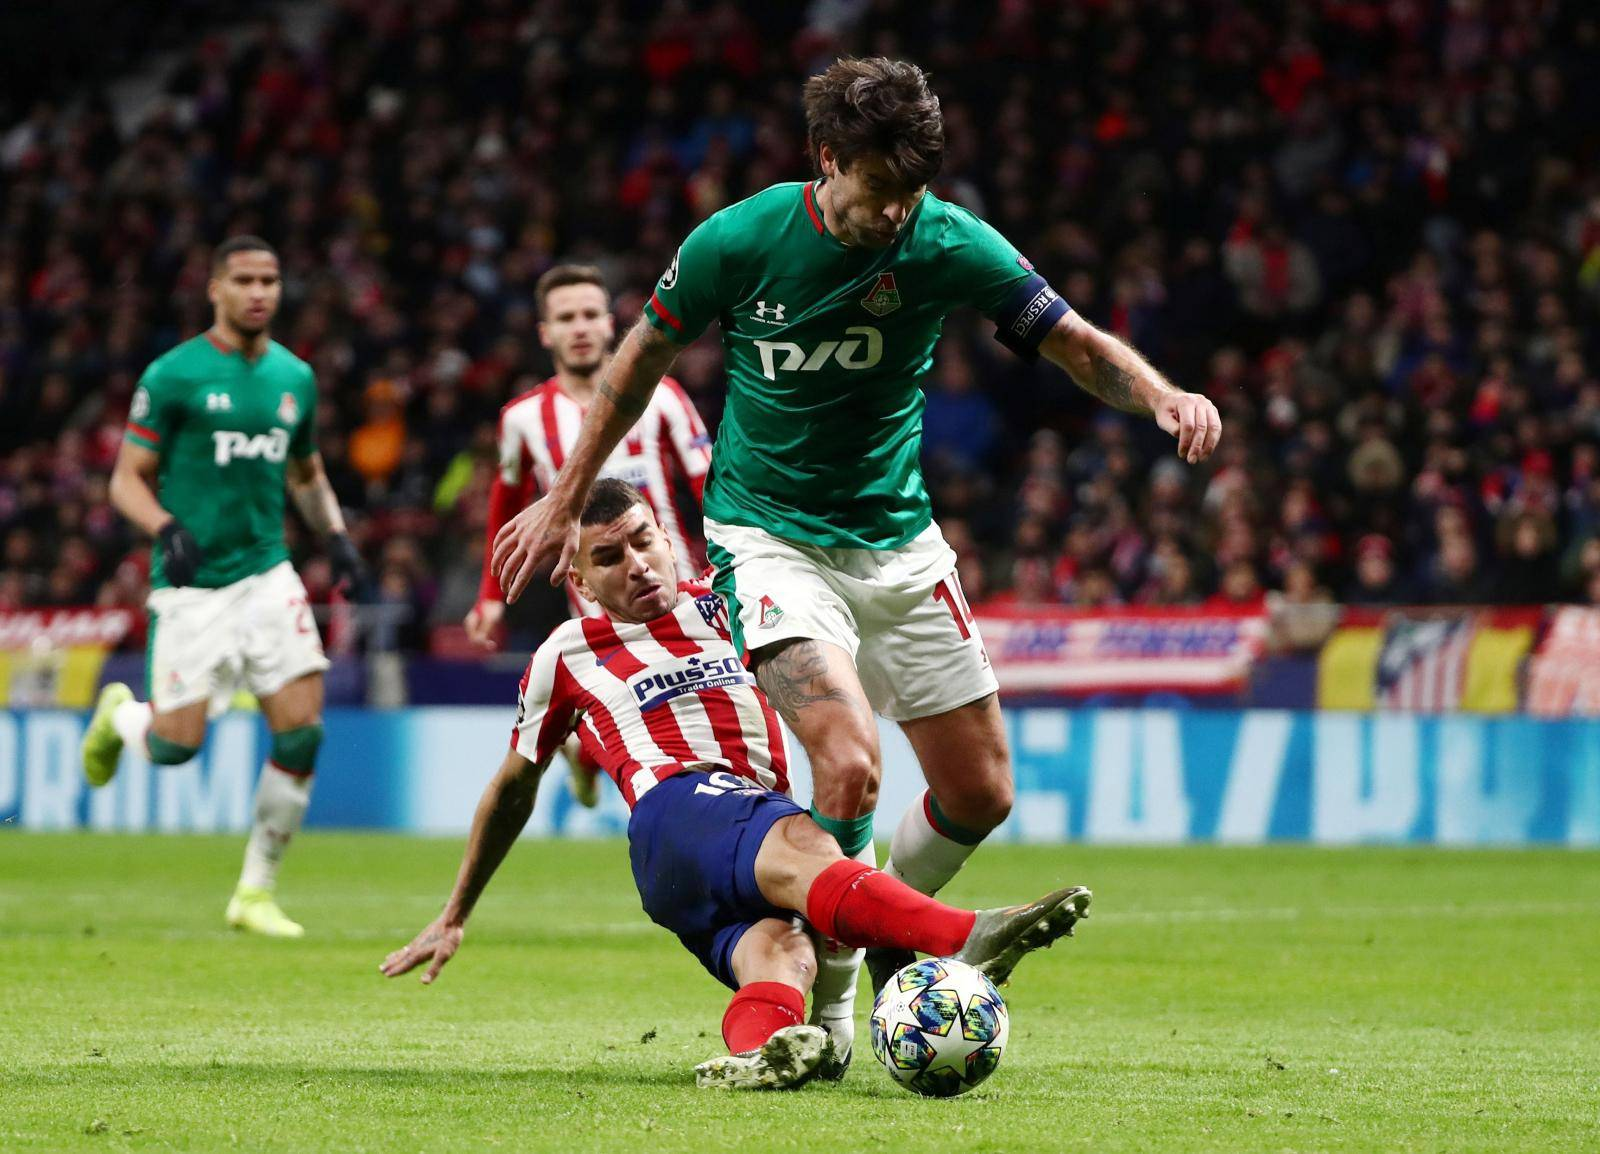 Champions League - Group D - Atletico Madrid v Lokomotiv Moscow